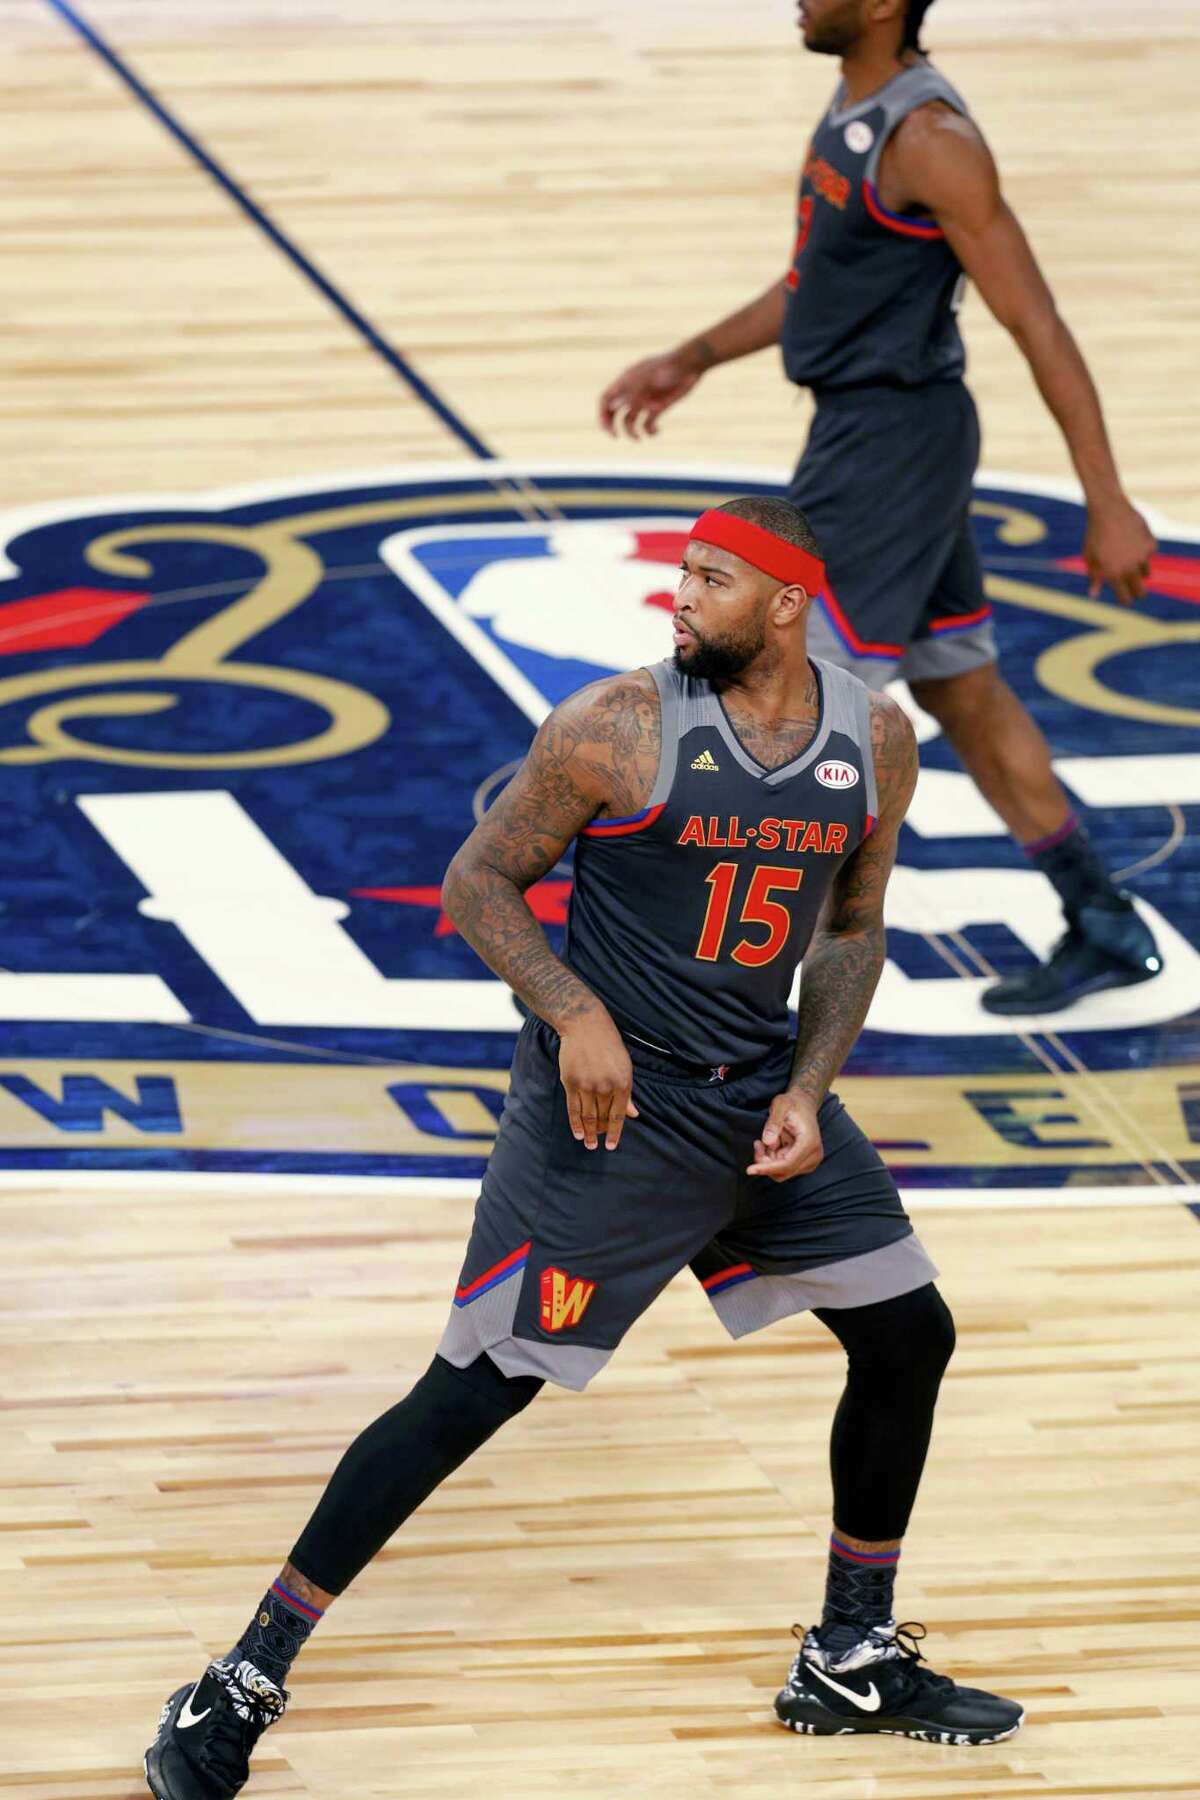 Western Conference forward DeMarcus Cousins of the Sacramento Kings (15) plays during the first half of the NBA All-Star basketball game in New Orleans on Sunday, Feb. 19, 2017. The New Orleans Pelicans agreed to acquire Cousins from the Kings on Sunday, the same night the center was playing in the All-Star Game in their arena.